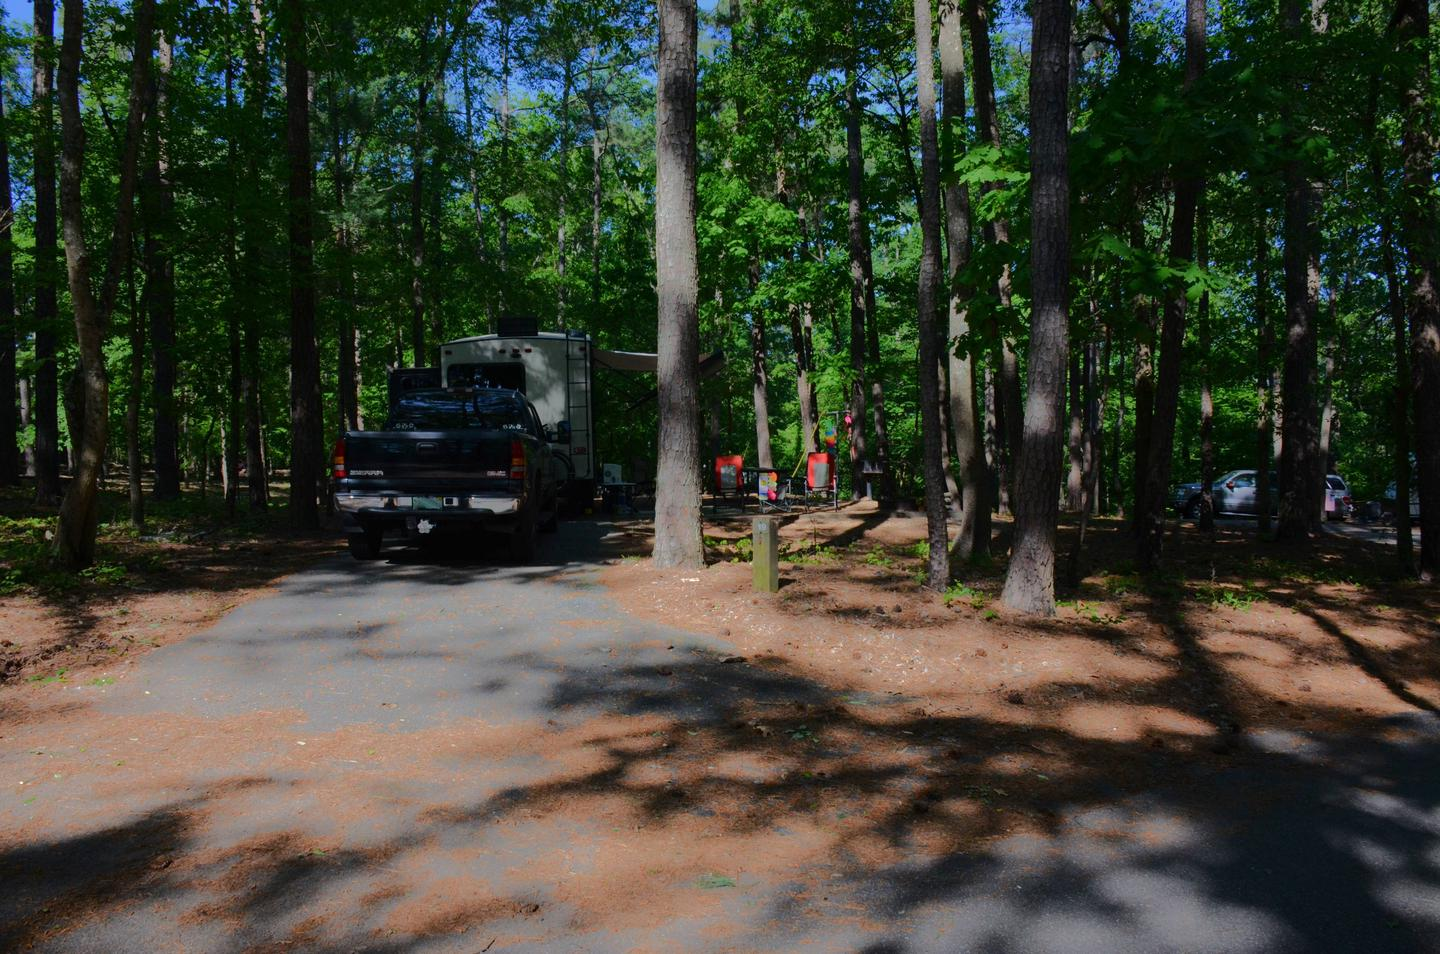 Pull-thru exit, driveway slope, awning-side clearance.McKinney Campground, campsite 19.